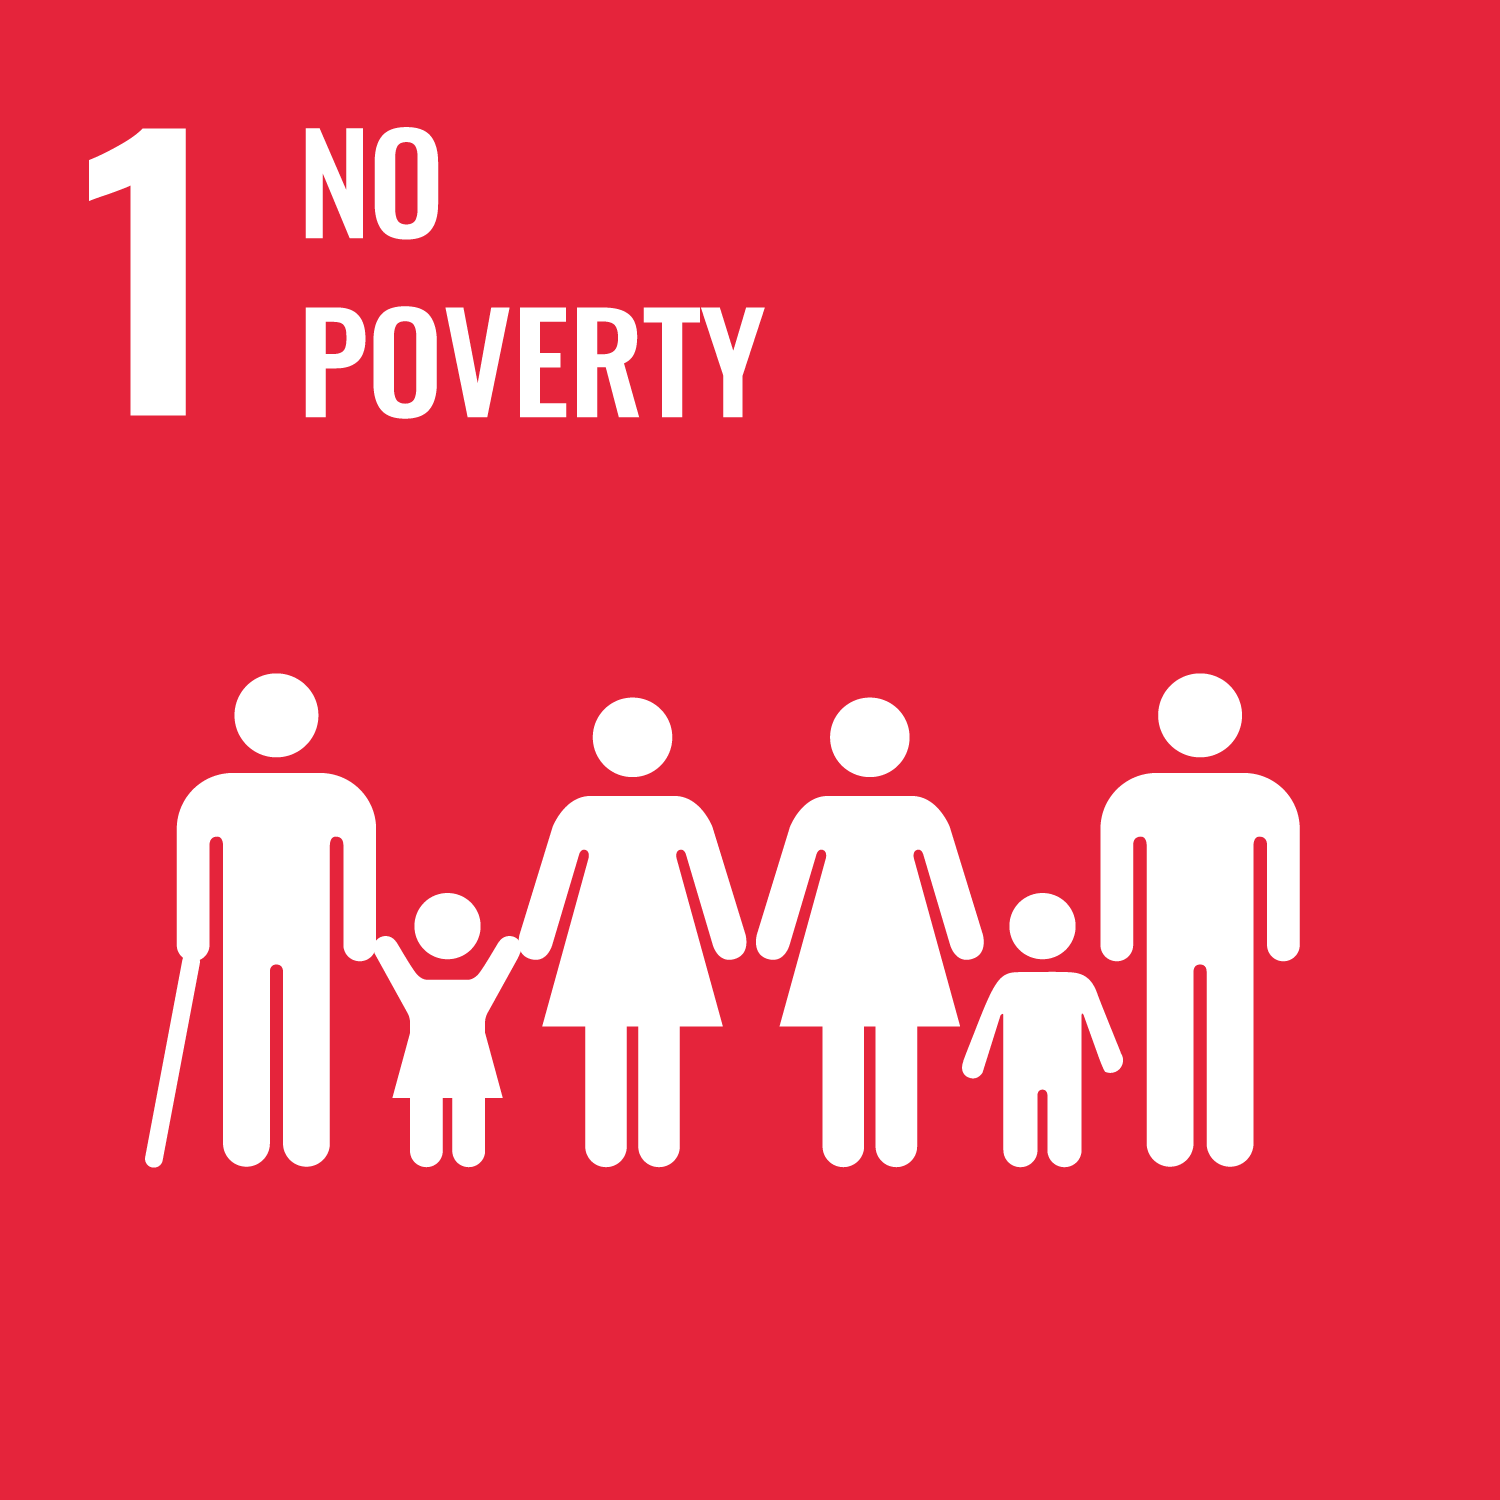 Sustainable Development Goal 1. End poverty in all its forms everywhere.